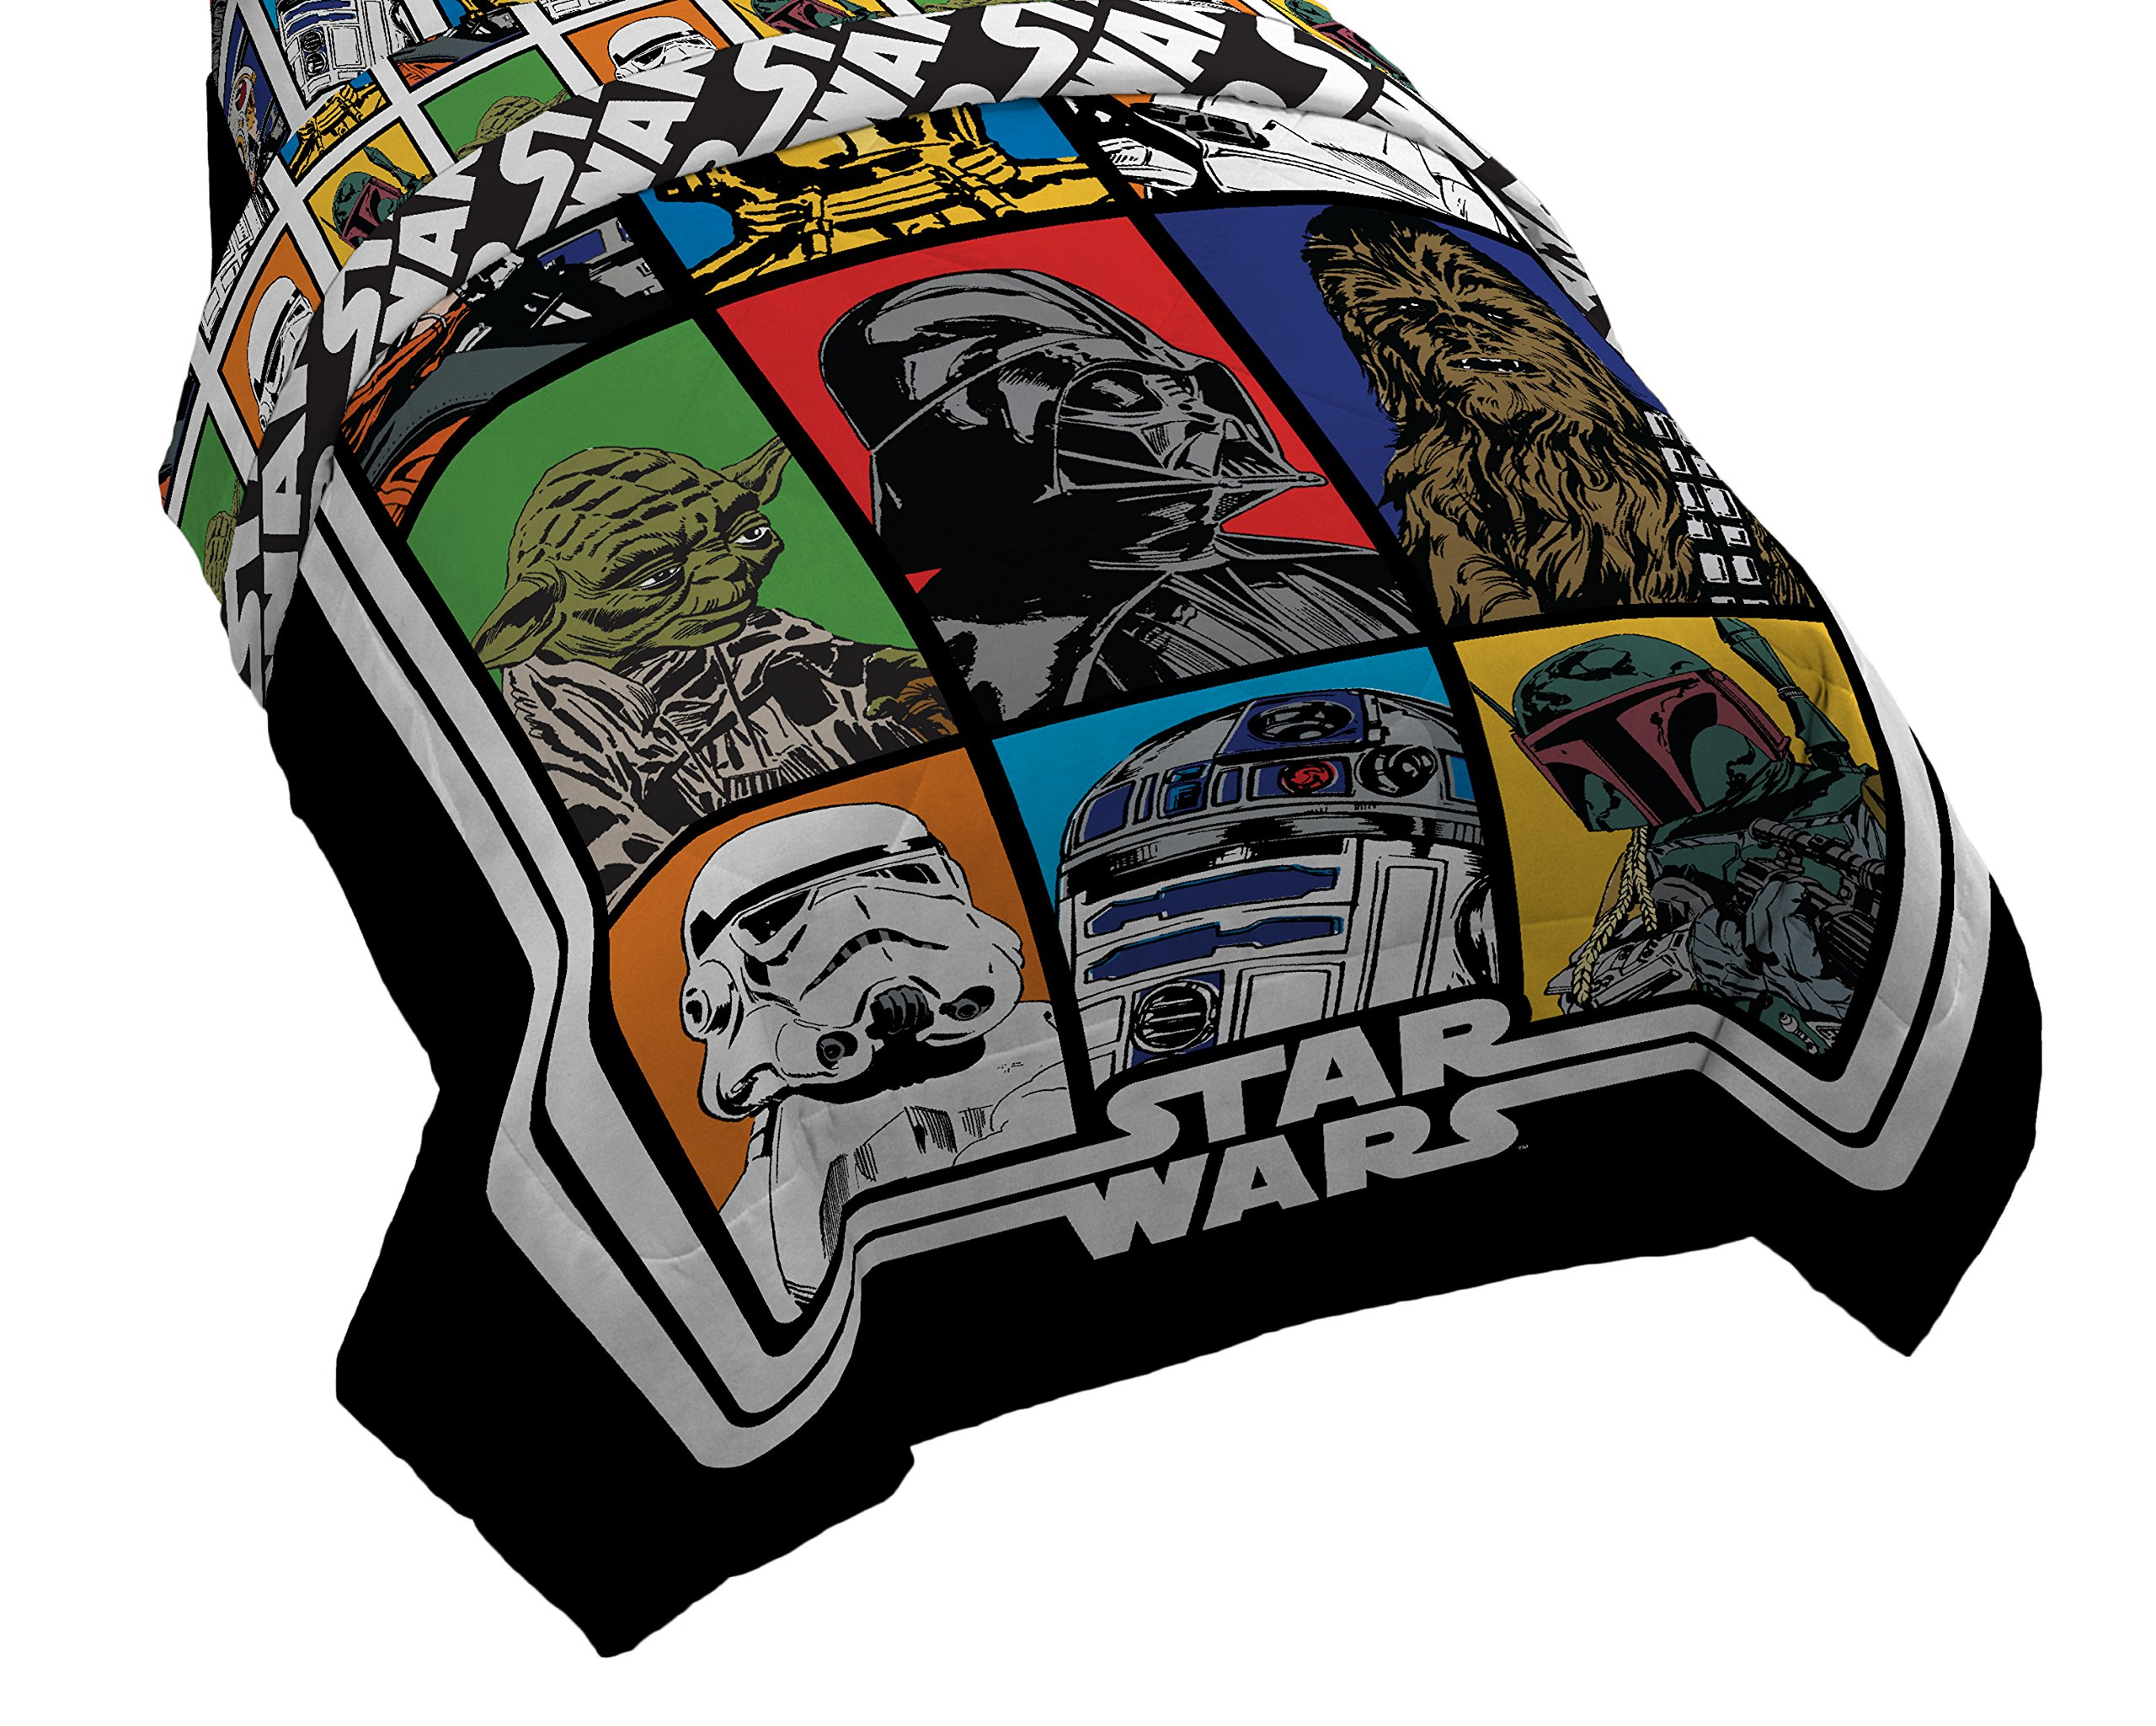 Lucas Film Star Wars Classic Twin/Full Comforter - Super Soft Kids Reversible Bedding - Fade Resistant Polyester Microfiber Fill (Official Star Wars Product)